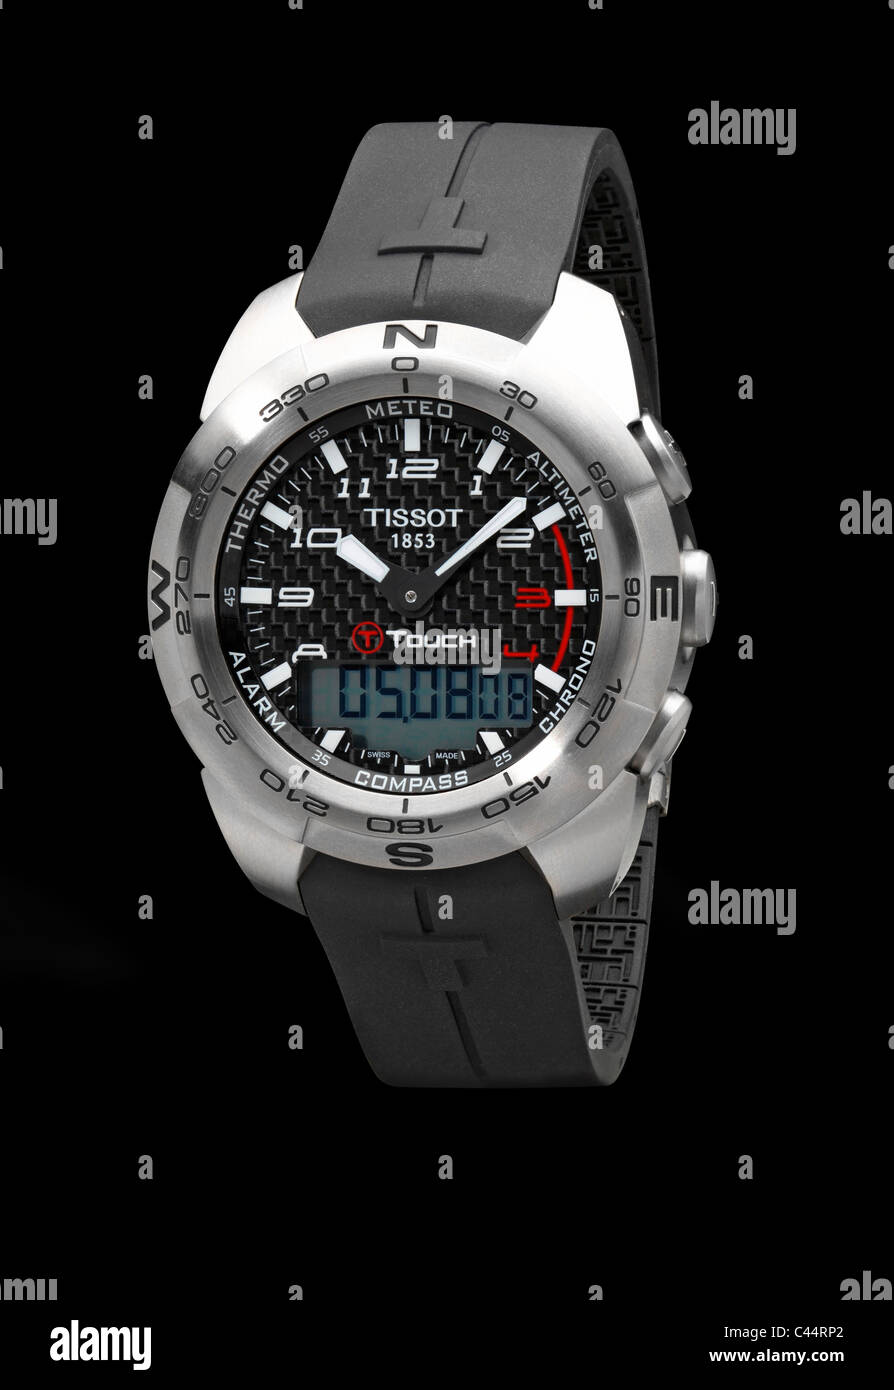 Tissot touch mens digital and analogue watch on black background - Stock Image